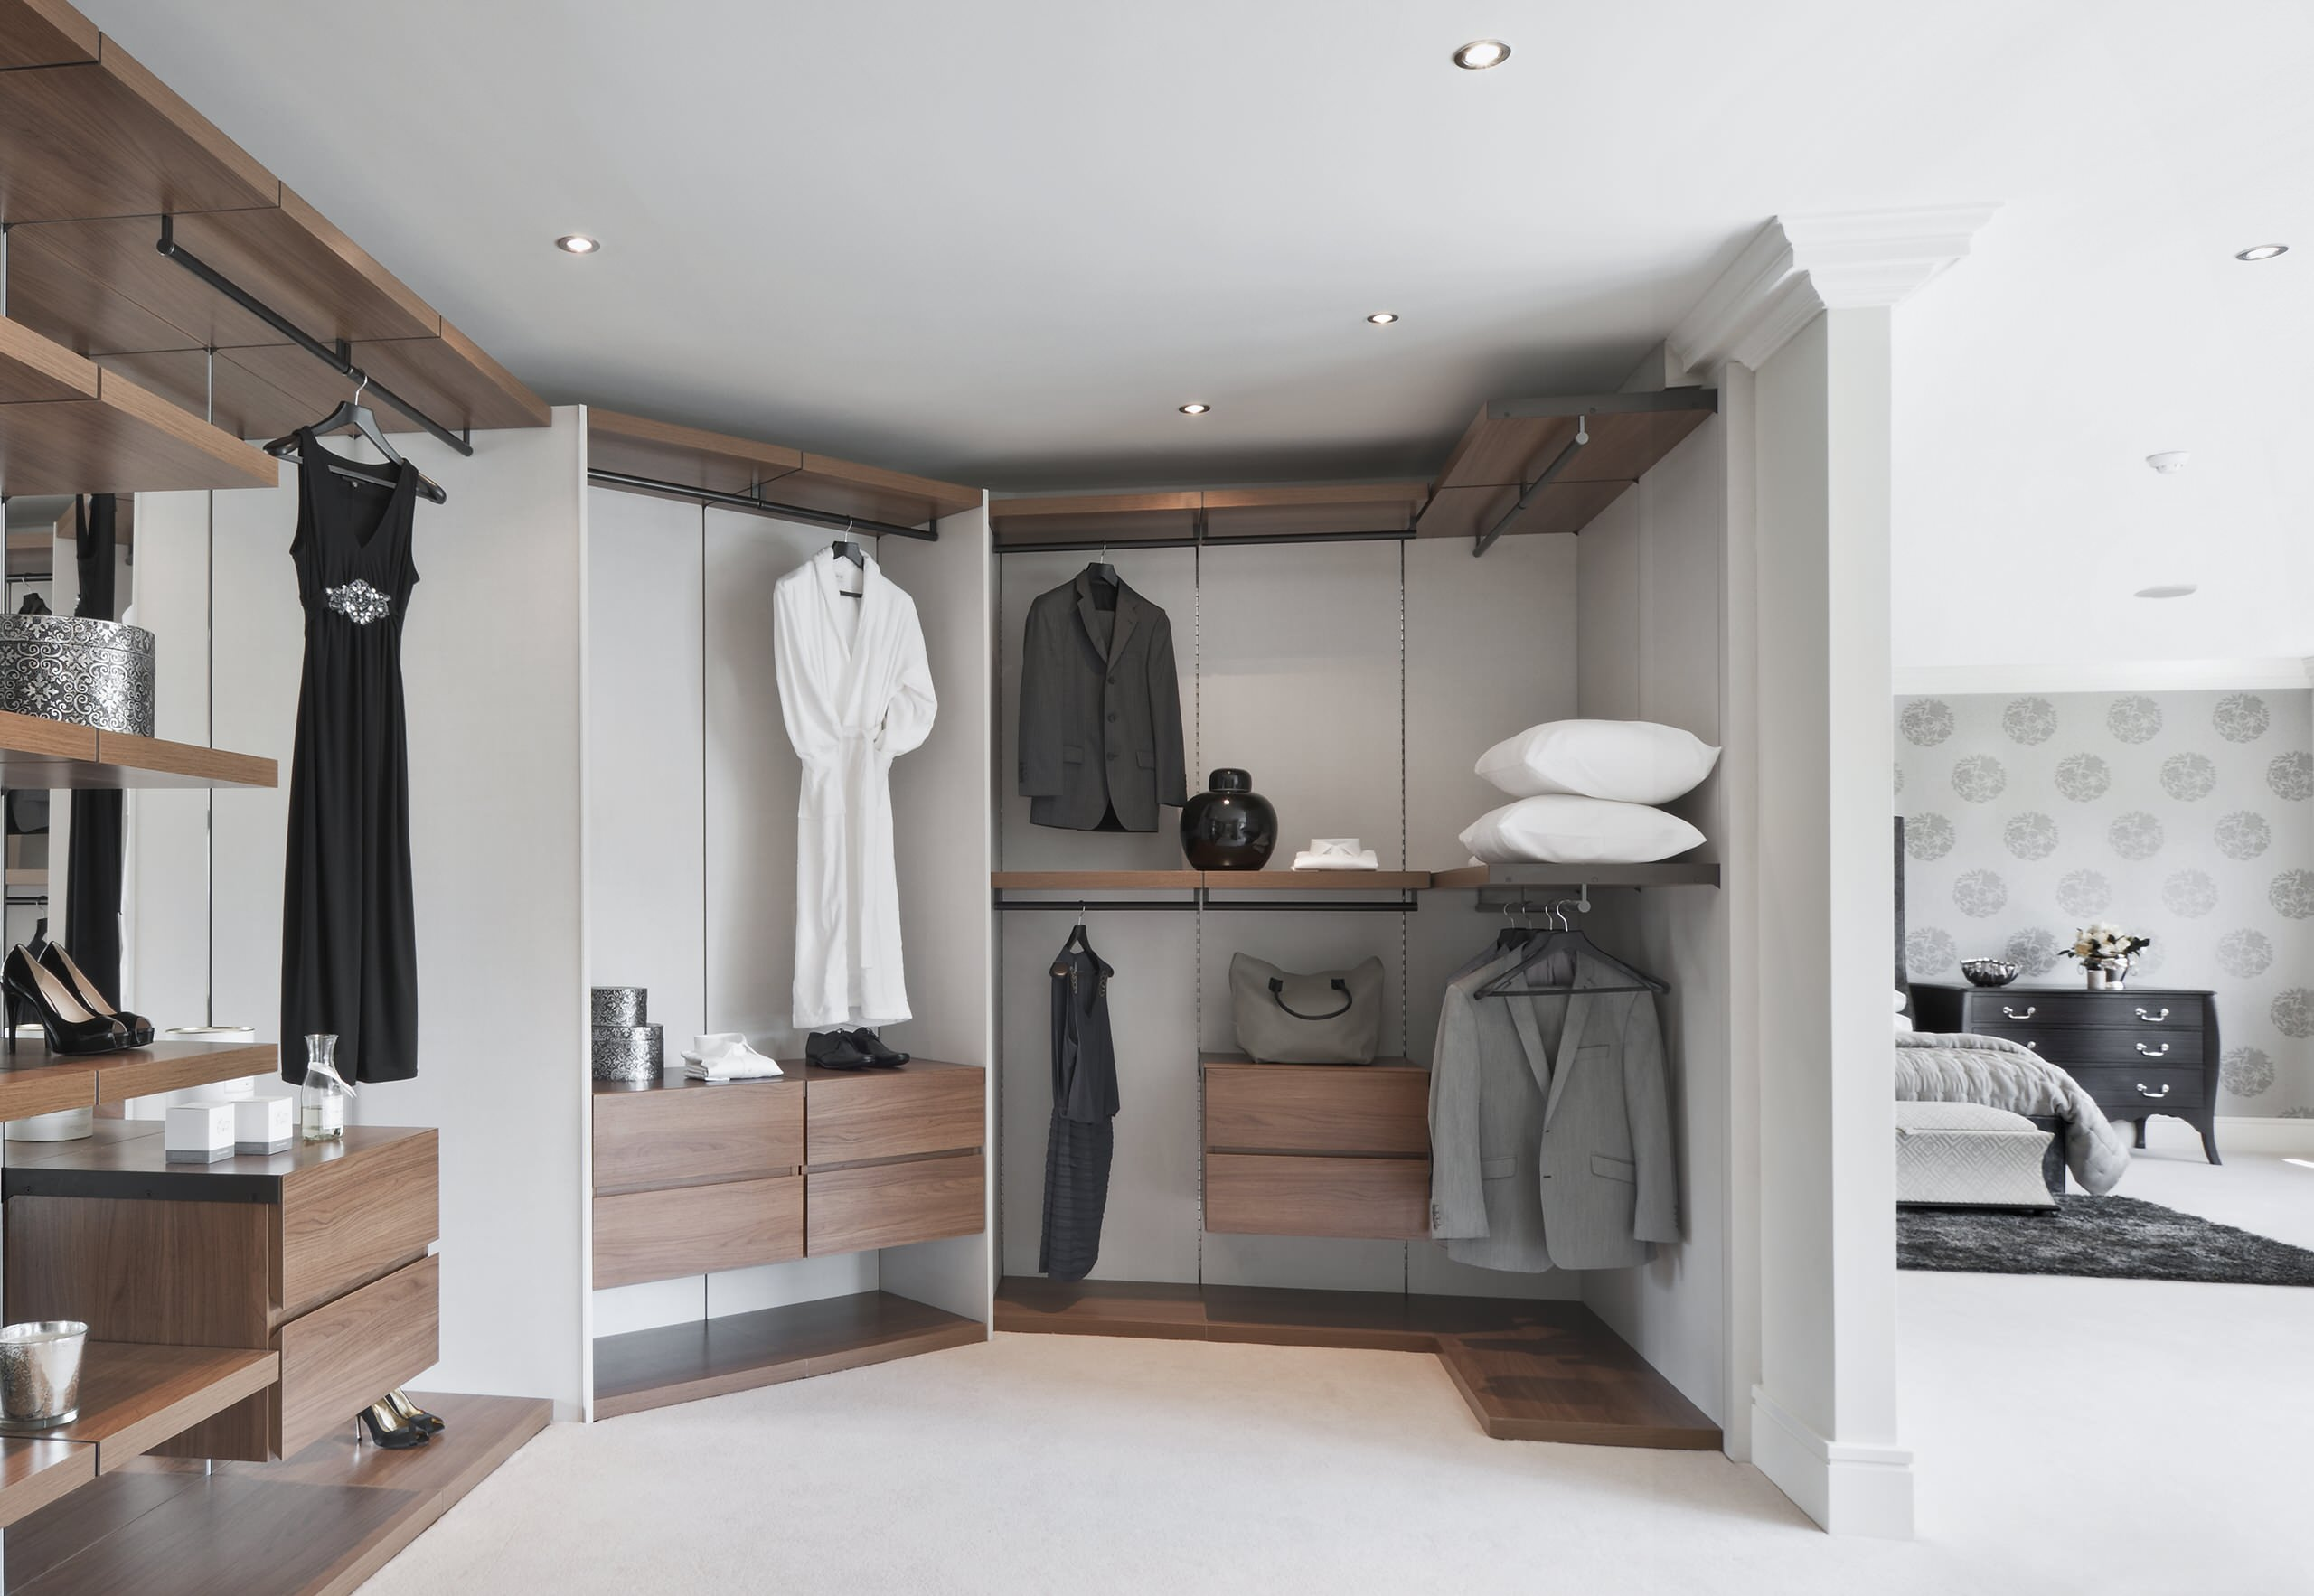 Ankleidezimmer Modern 75 Beautiful Modern Dressing Room Pictures & Ideas - May, 2021 | Houzz